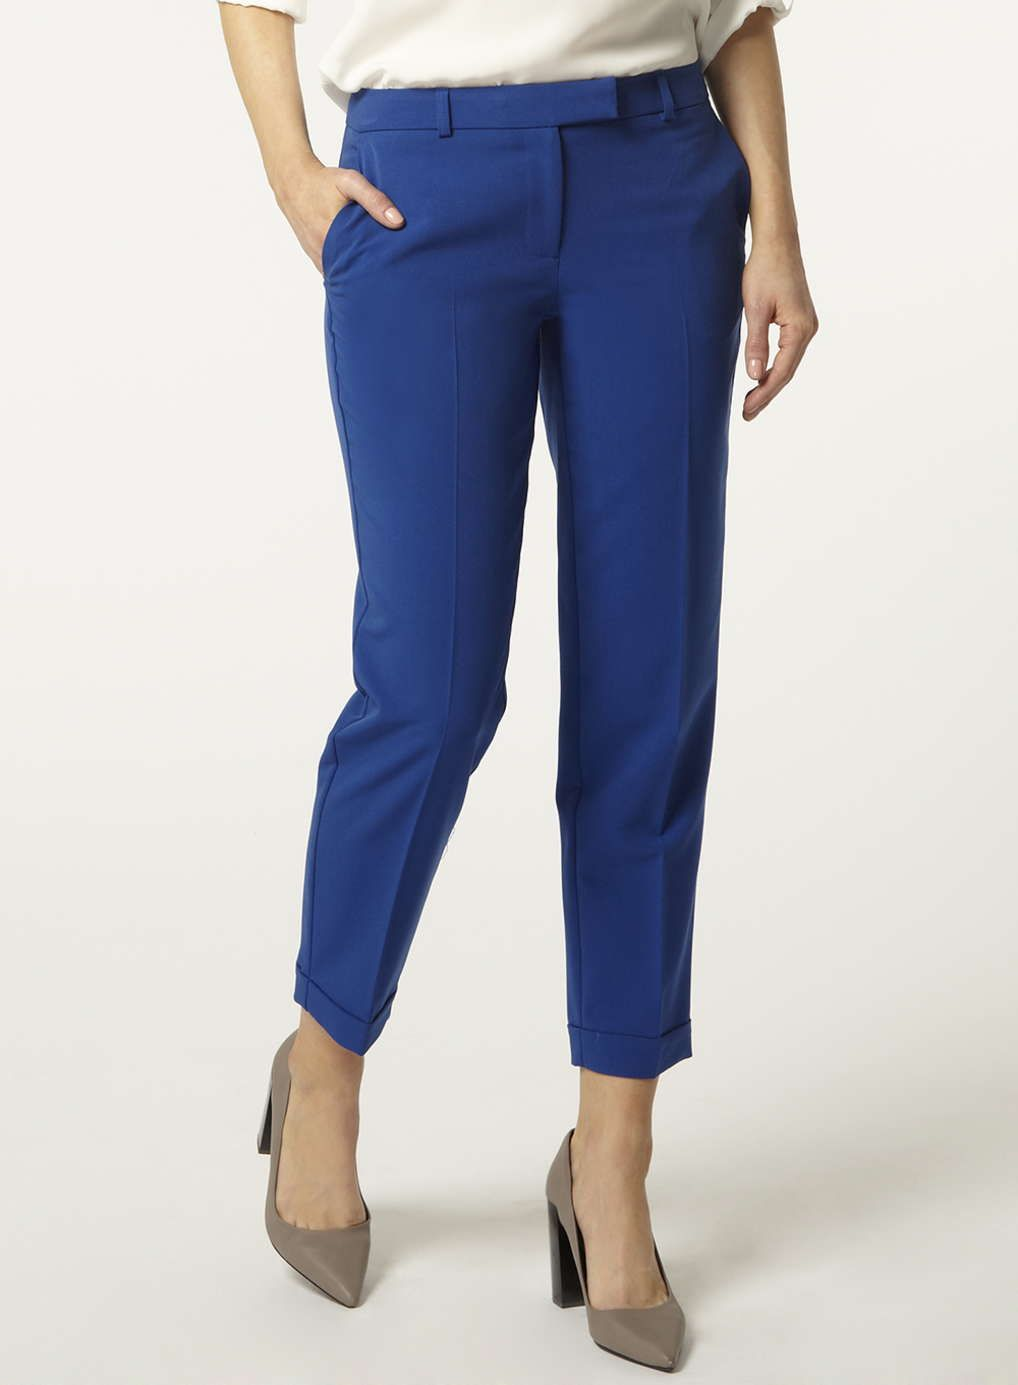 bb6fccb15f8 Cobalt Ankle Grazer Trousers as seen in Grazia  DorothyPerkins